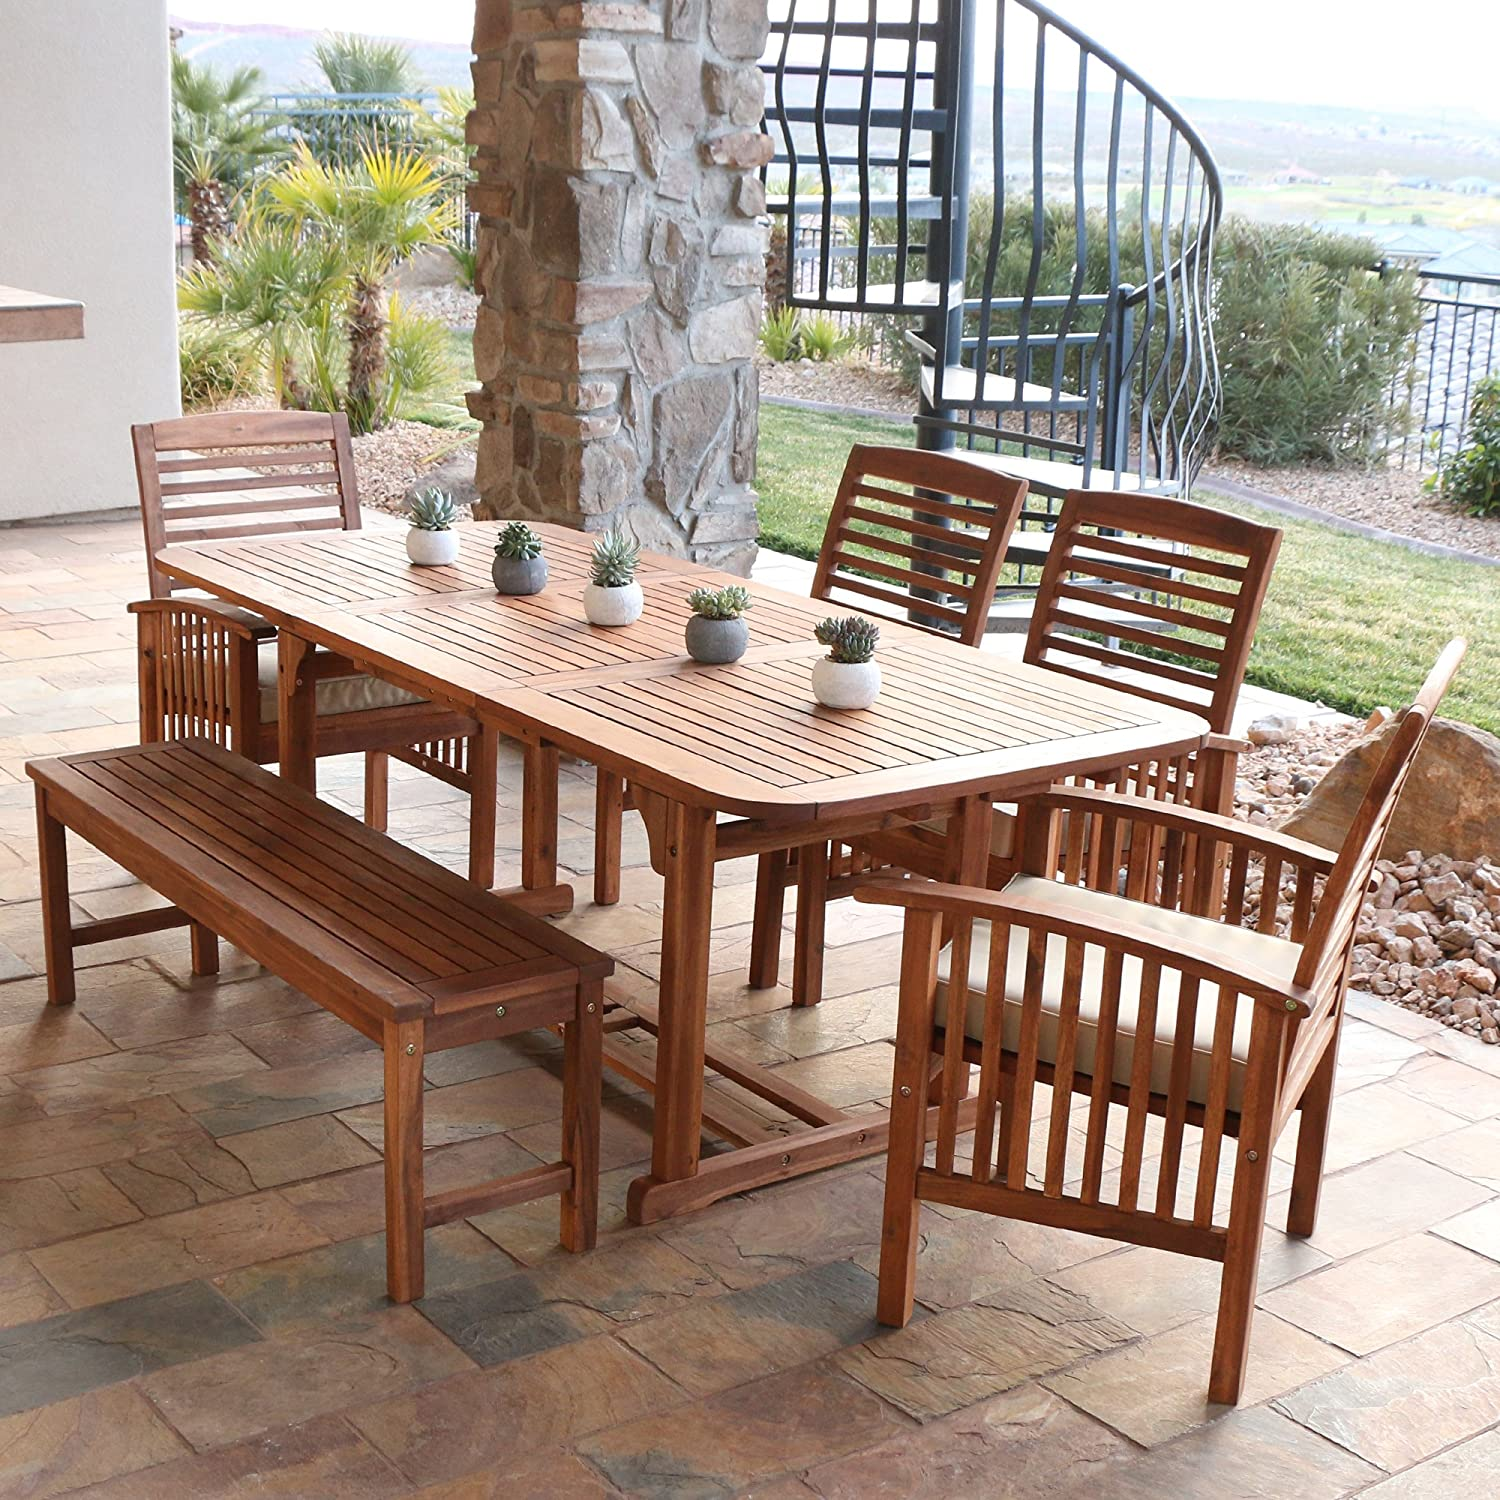 p statesville st padded with top set sets piece in dining bay glass sling patio hampton